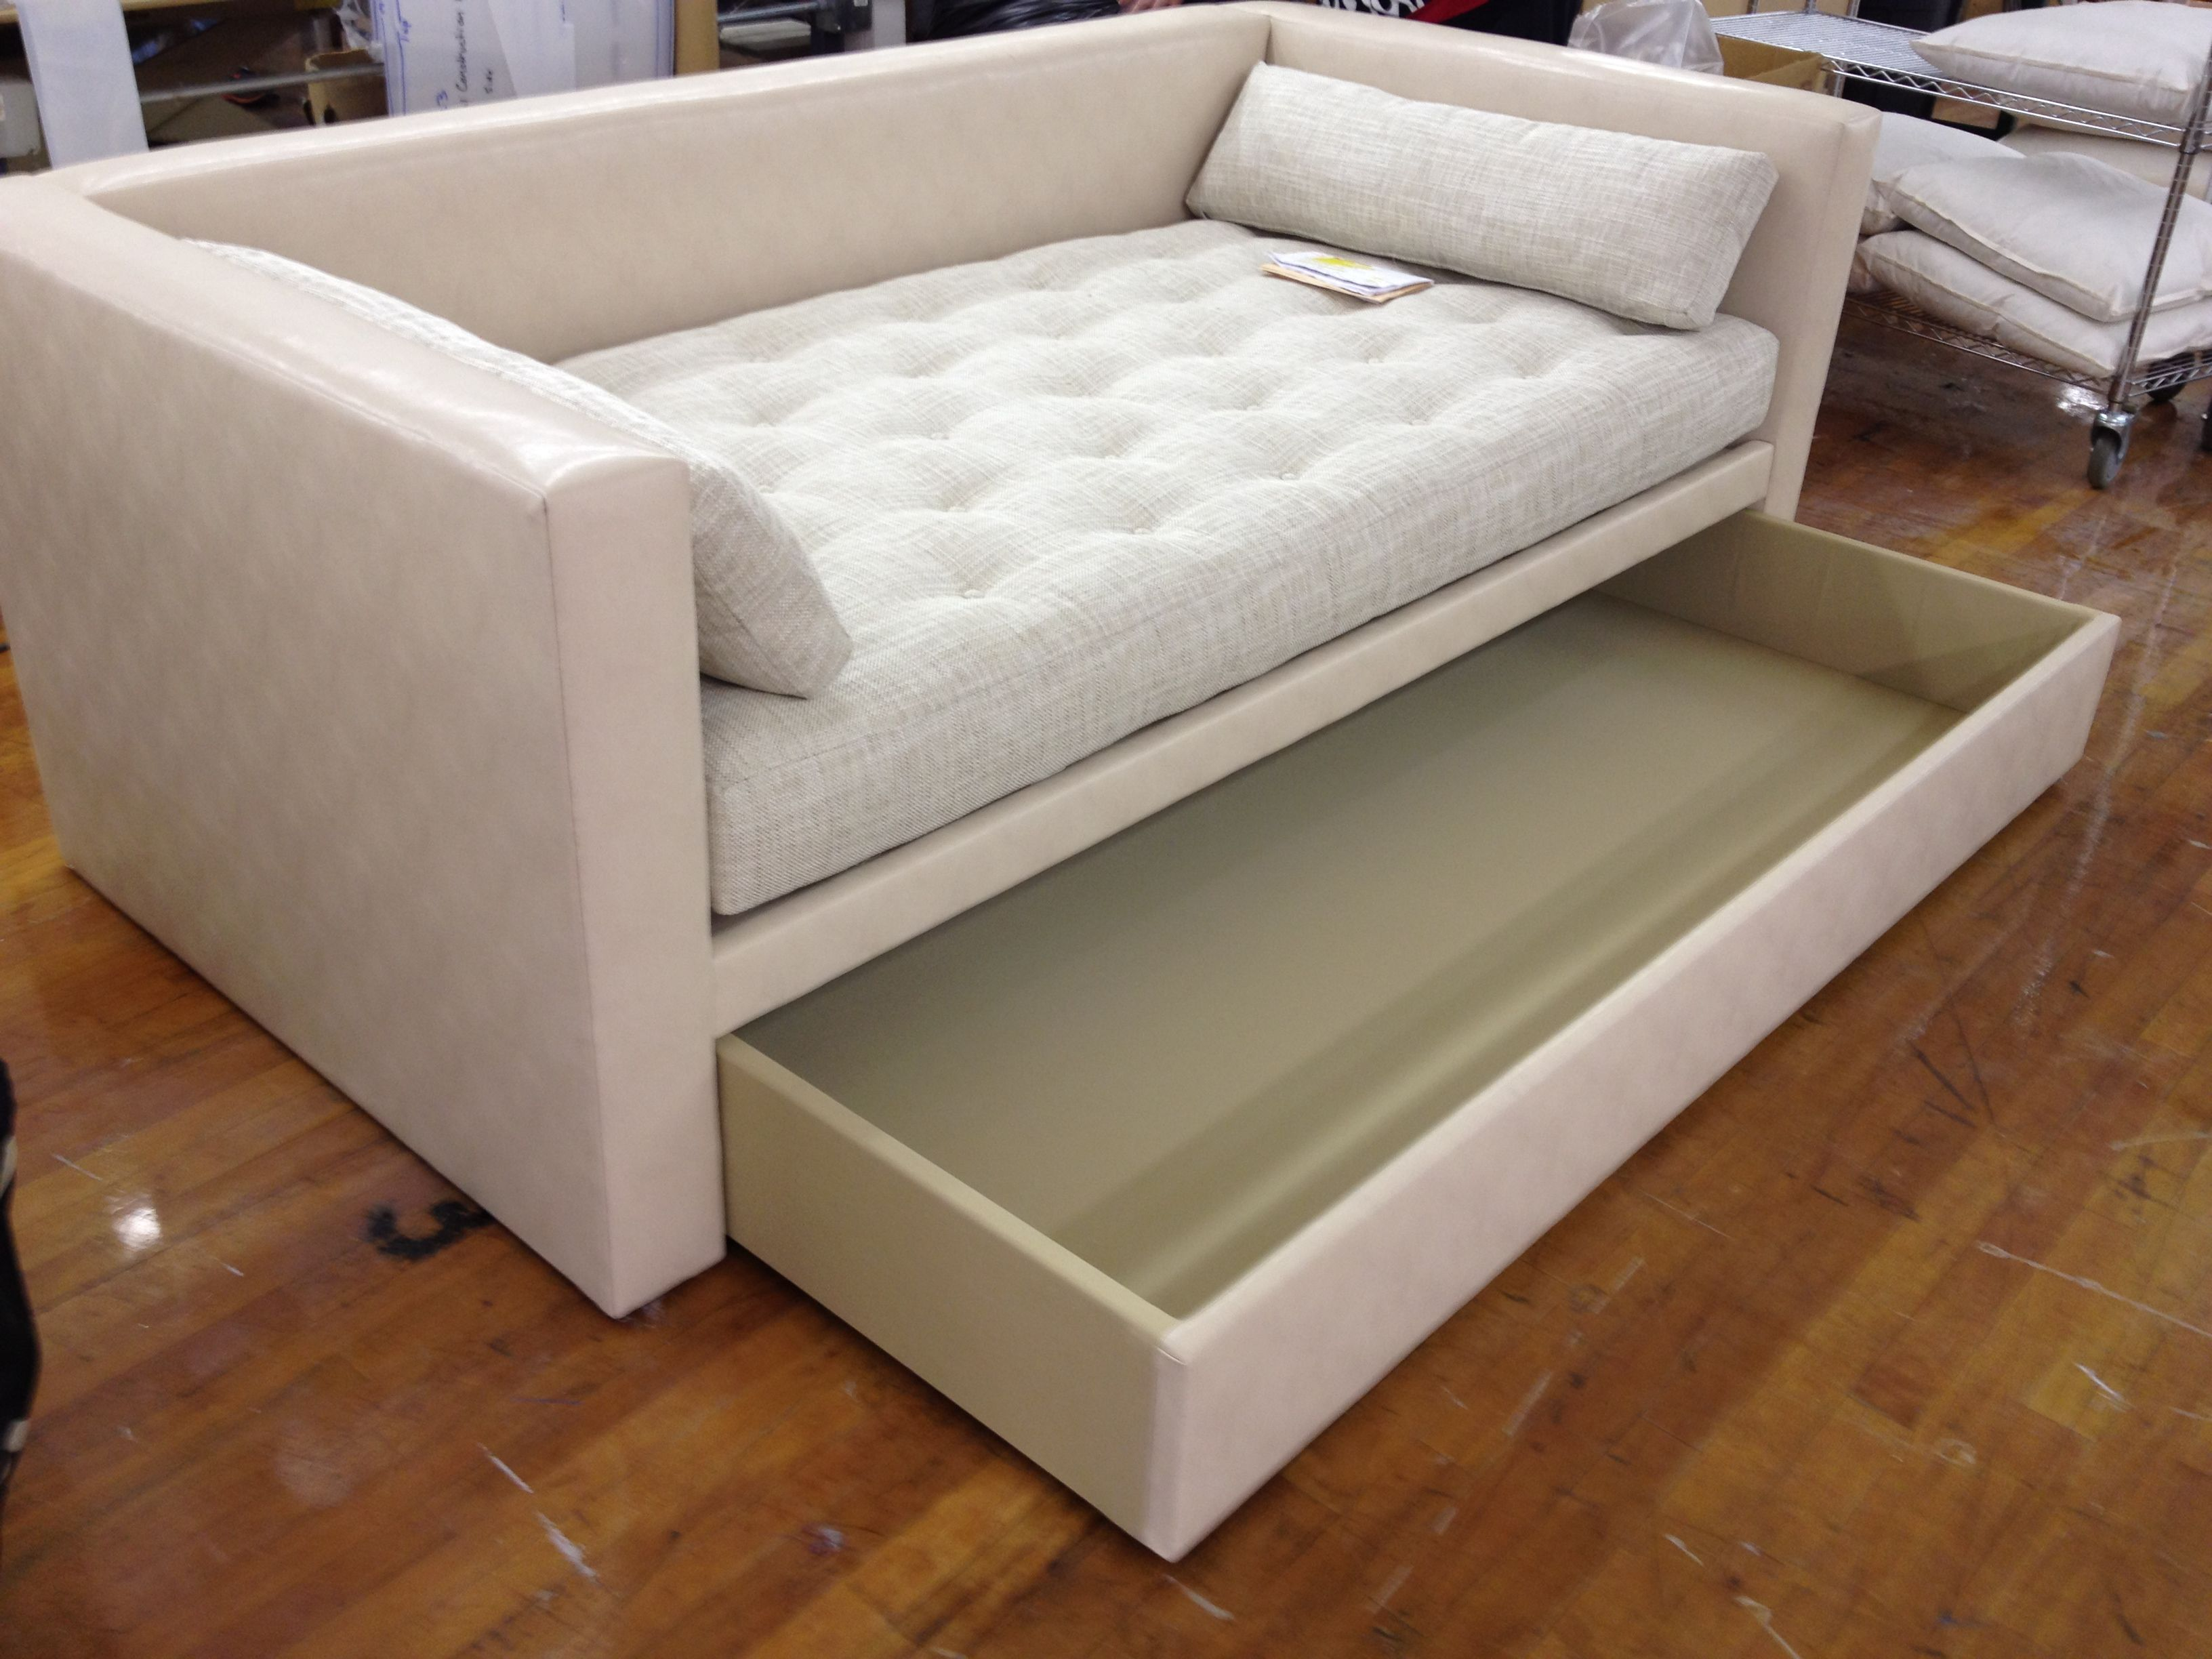 Trundle bed sofa porter m2m divan into a custom sized for Divan upholstered bed